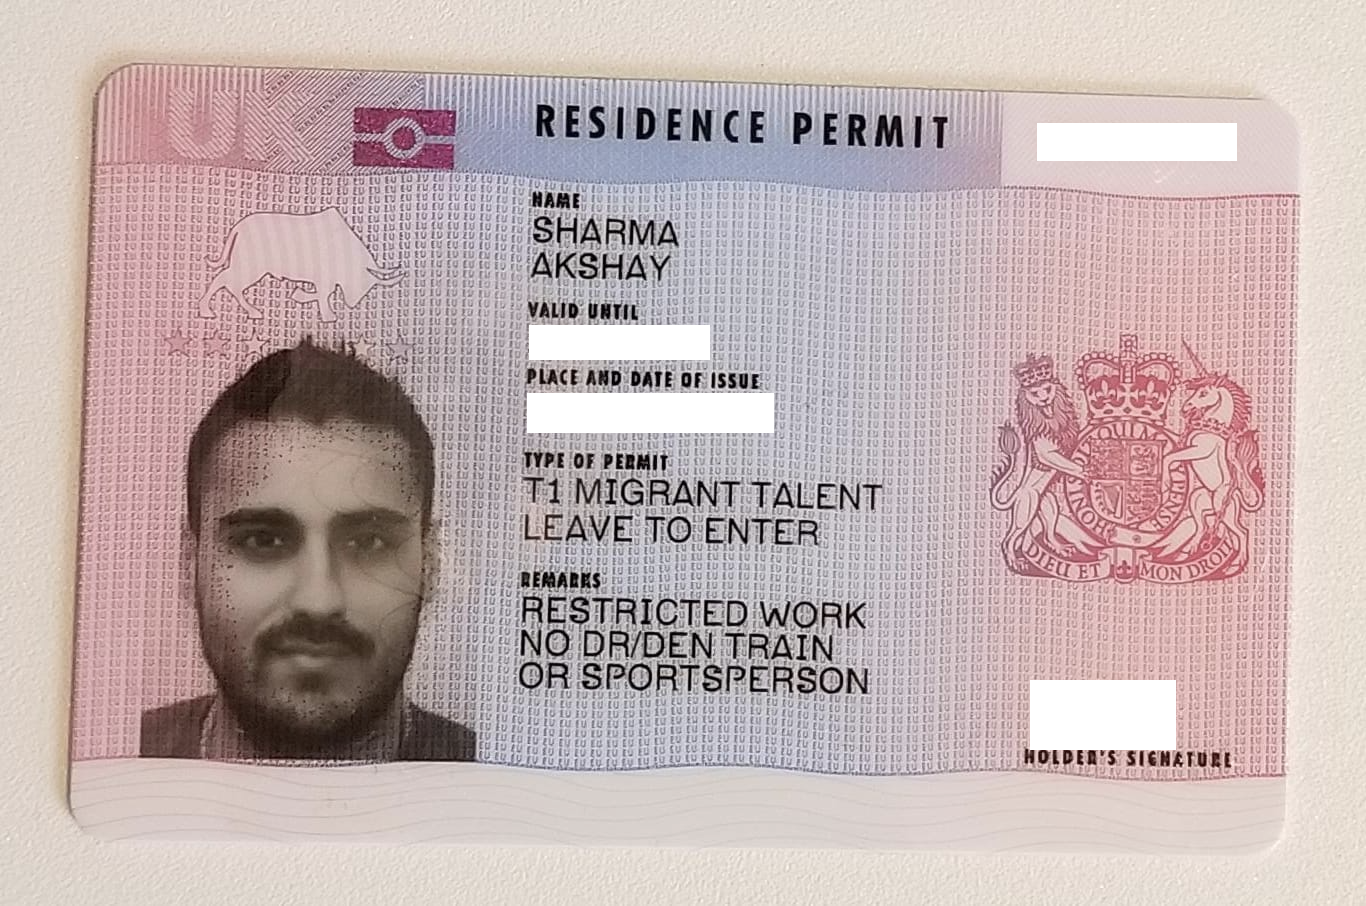 How to tell a real passport or an ID from a fake easily?